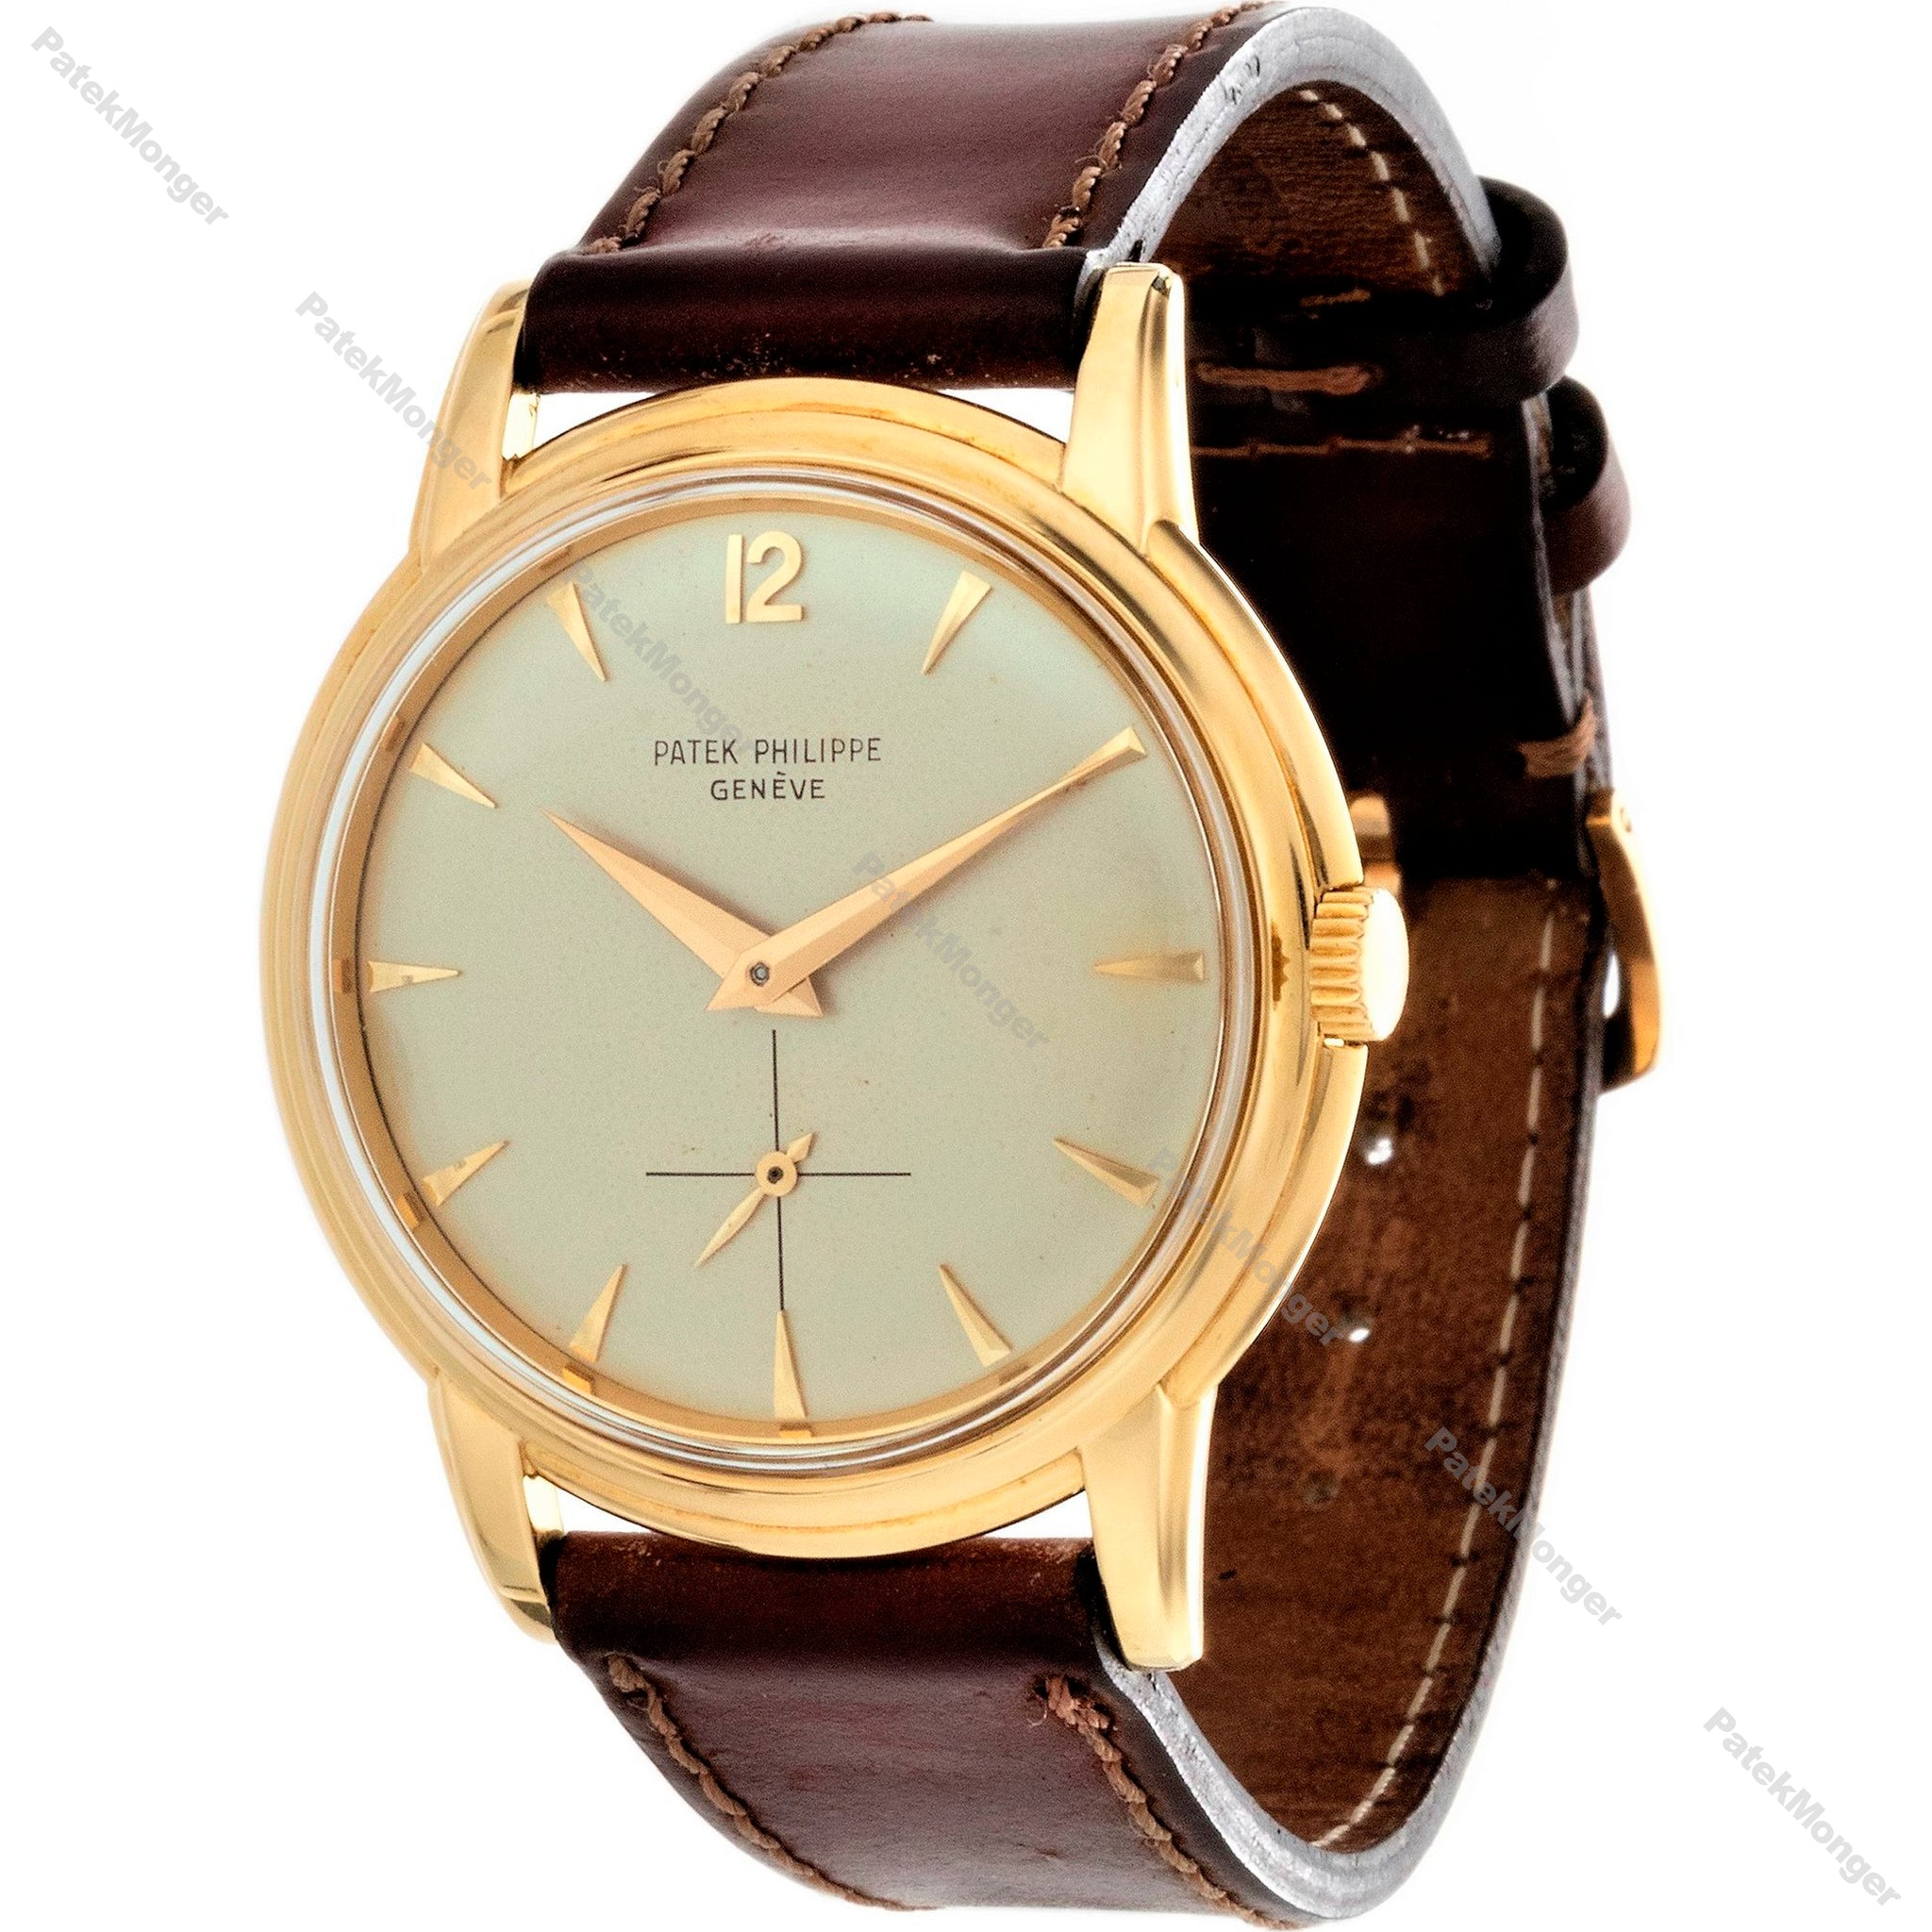 Patek Philippe 2525J 18K Gold Vintage Calatrava water risistant case, Watch Circa 1957